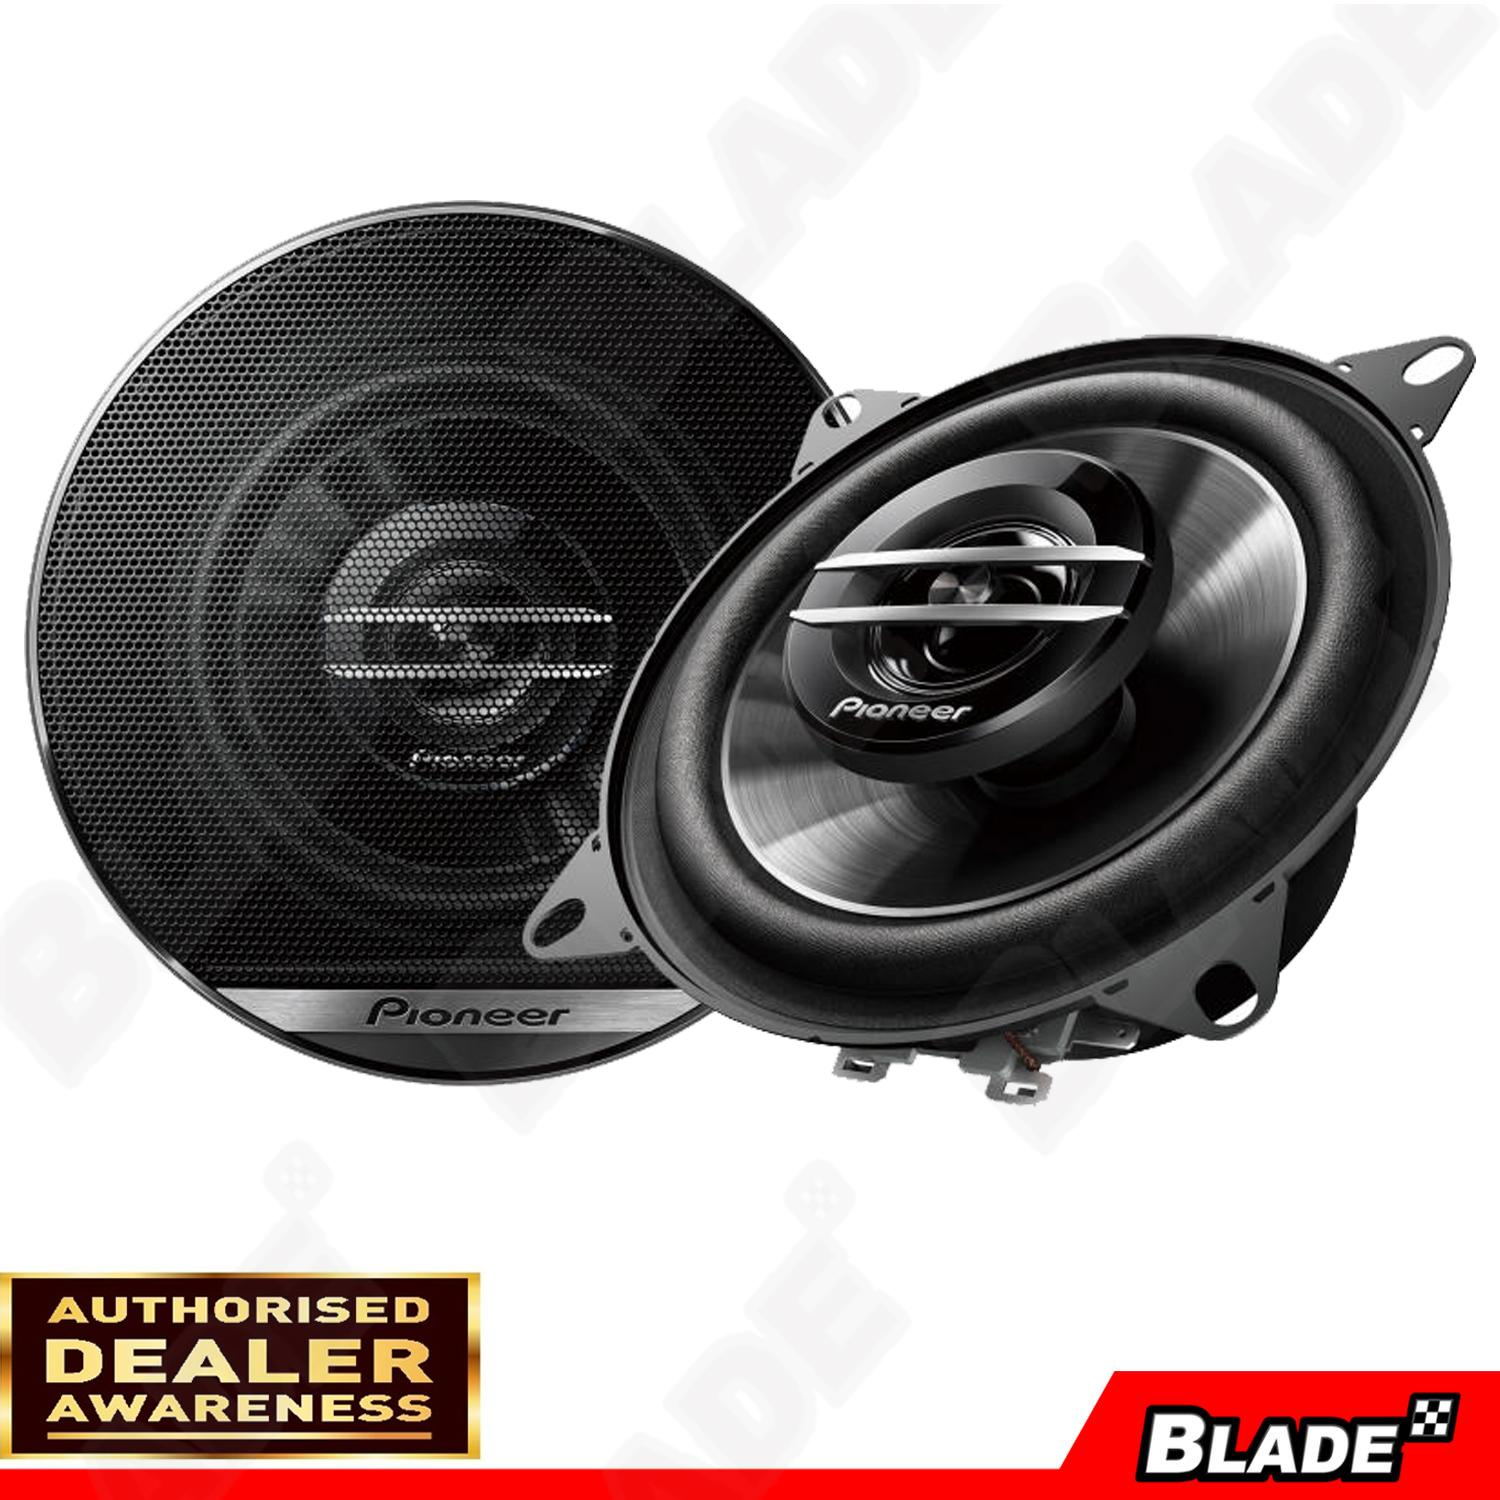 Pioneer Philippines Car Speakers For Sale Prices Speaker Ts F1634r Coaxial 2way G1020gf0w 10cm Dual Cone Pair